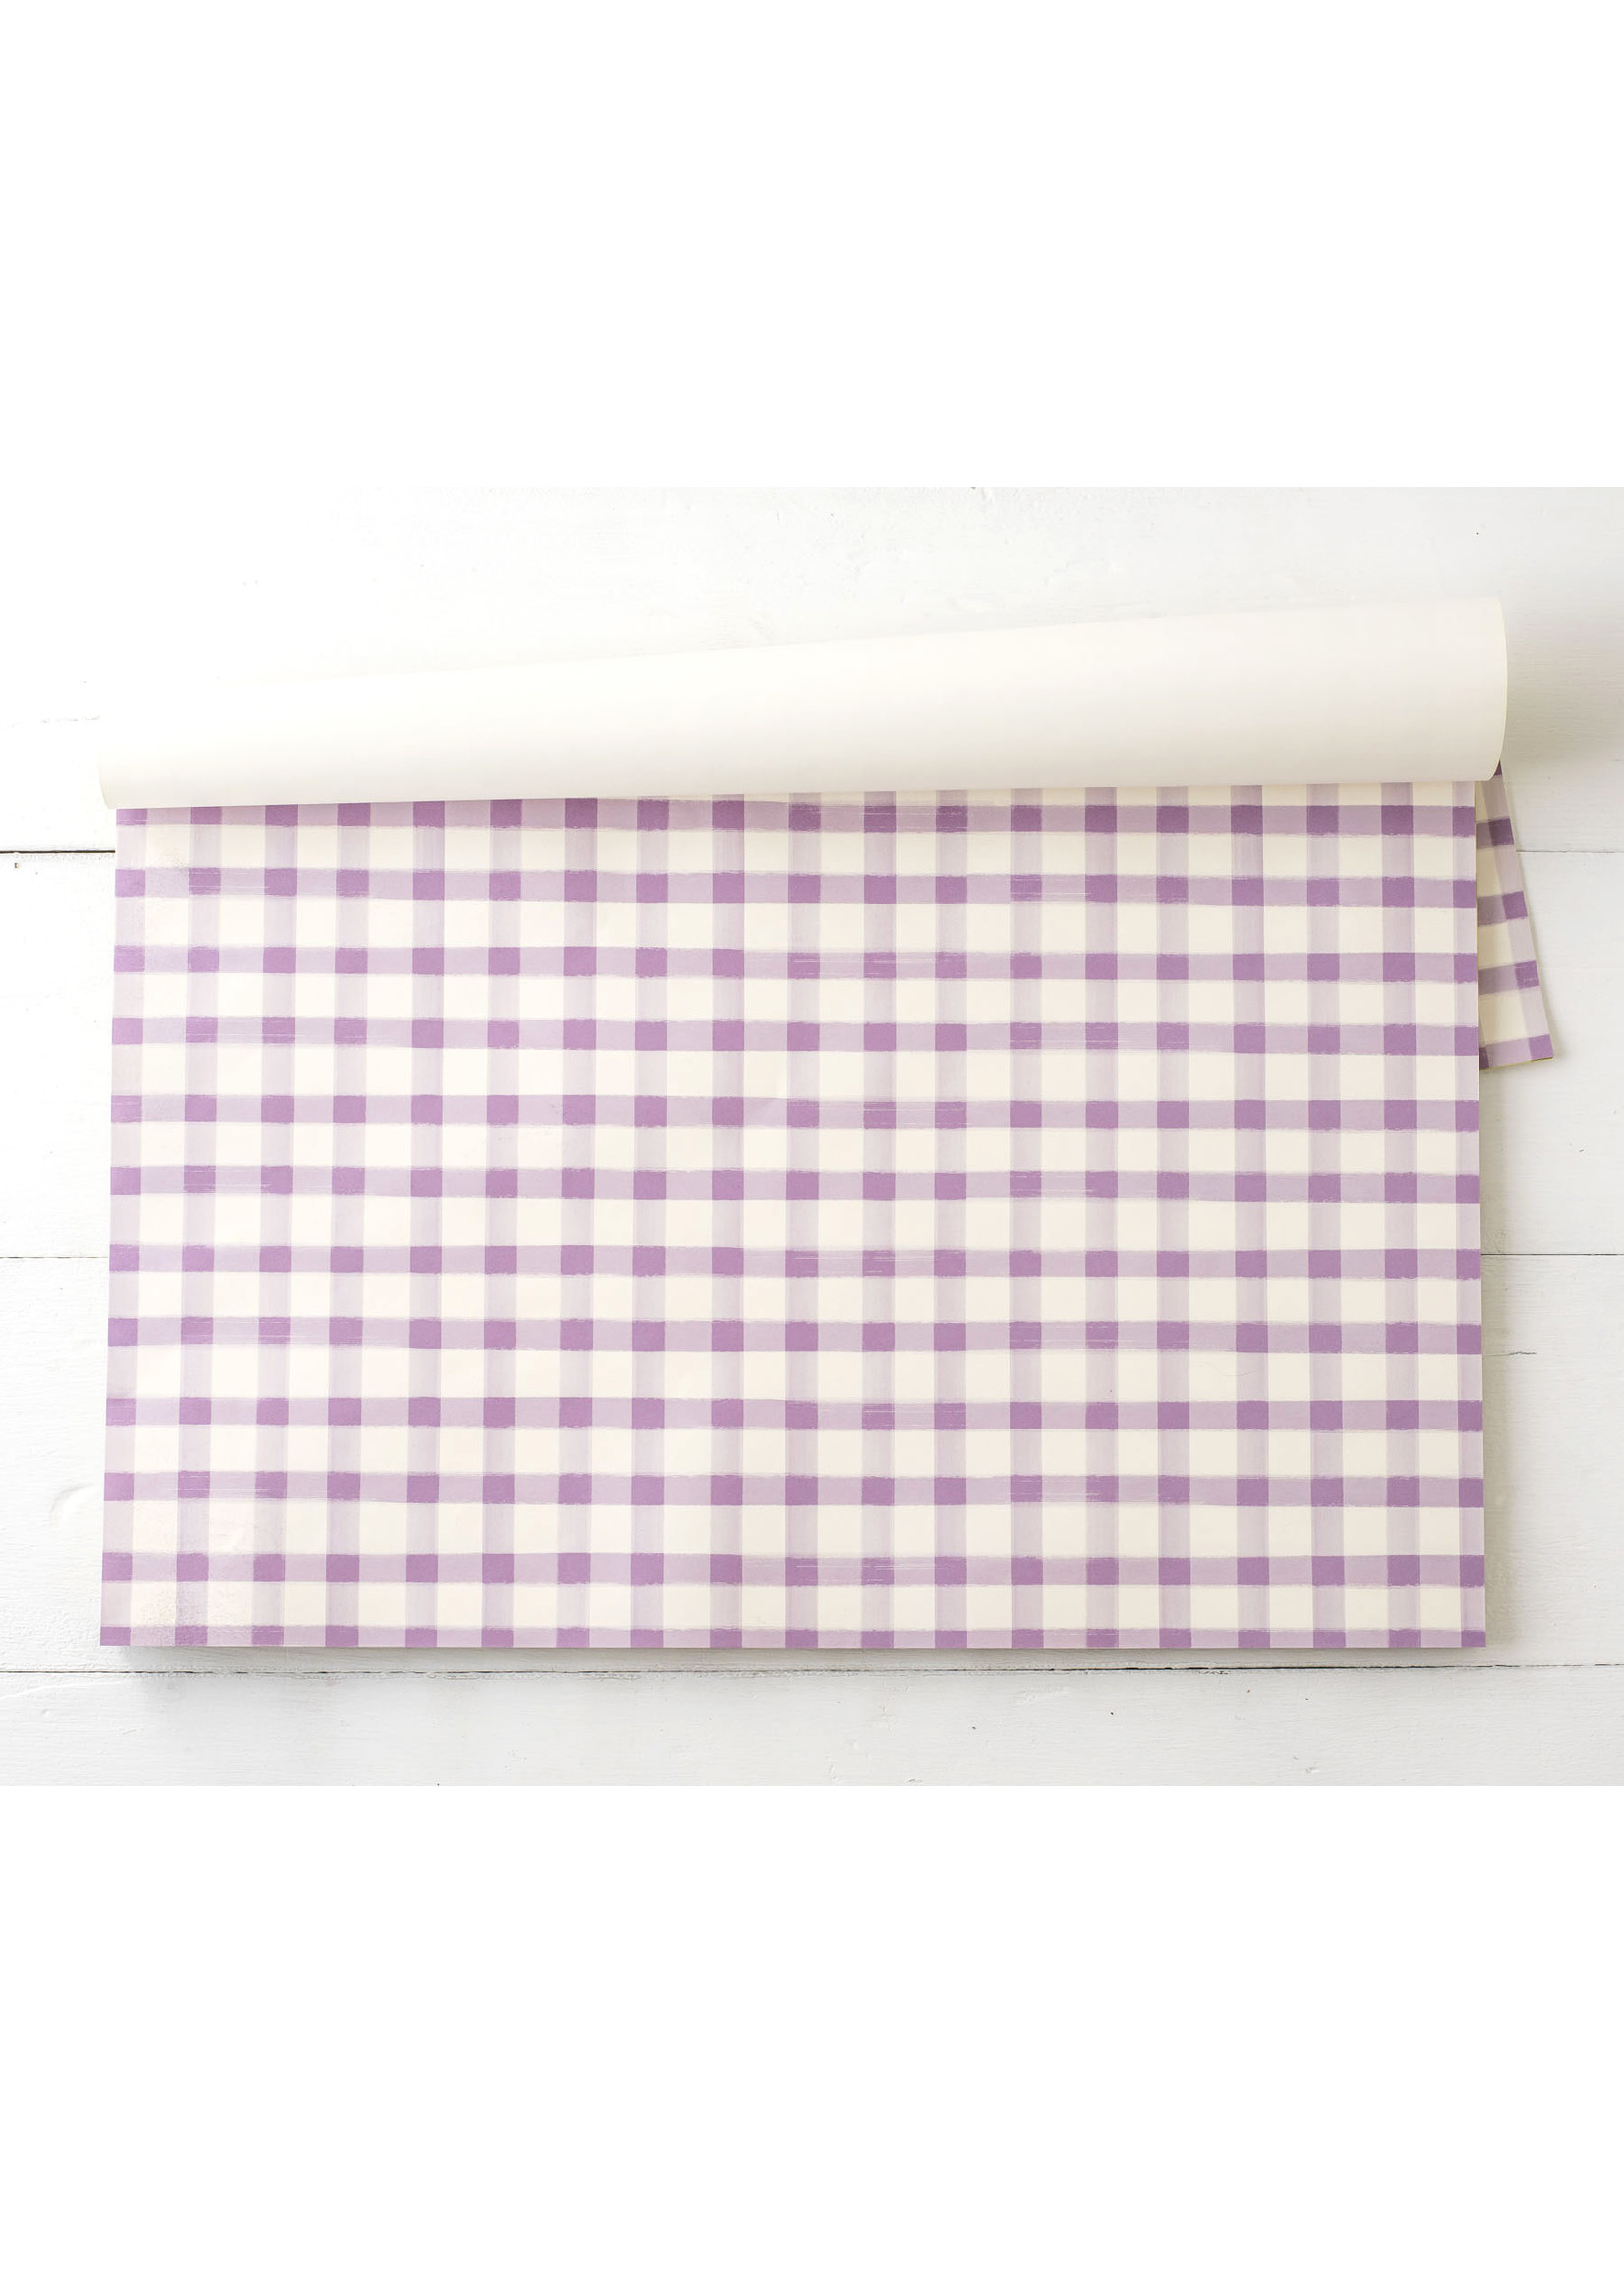 Hester & Cook Paper Placemats - Lilac Painted Check (24 sheets)